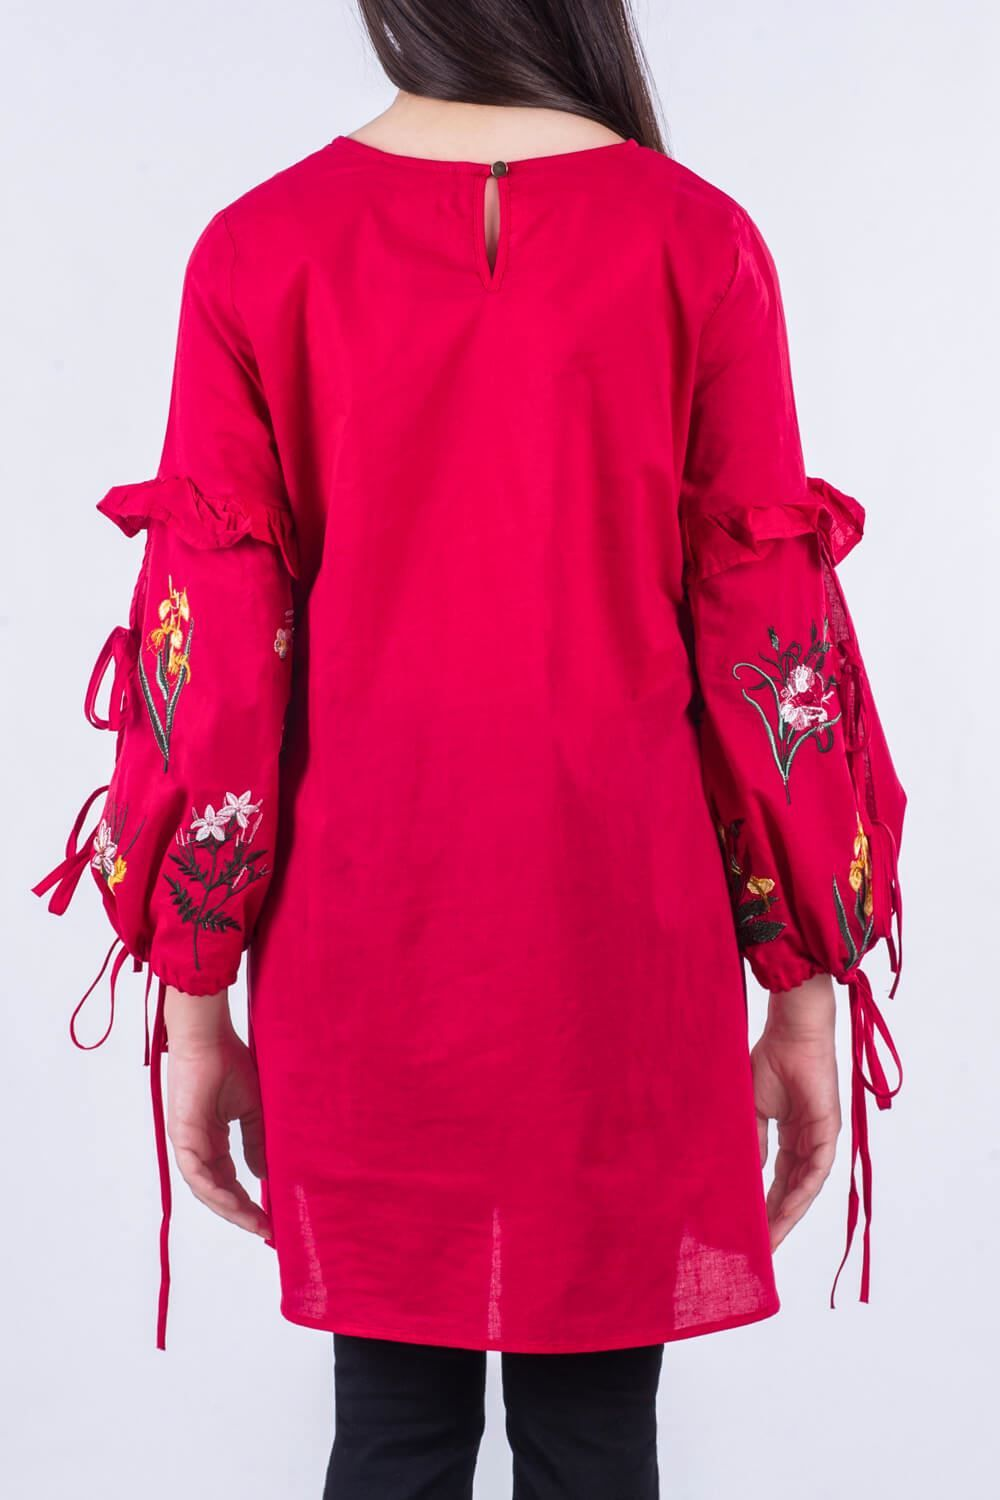 Embroidered red ready to wear top By breakout pret wear 2018